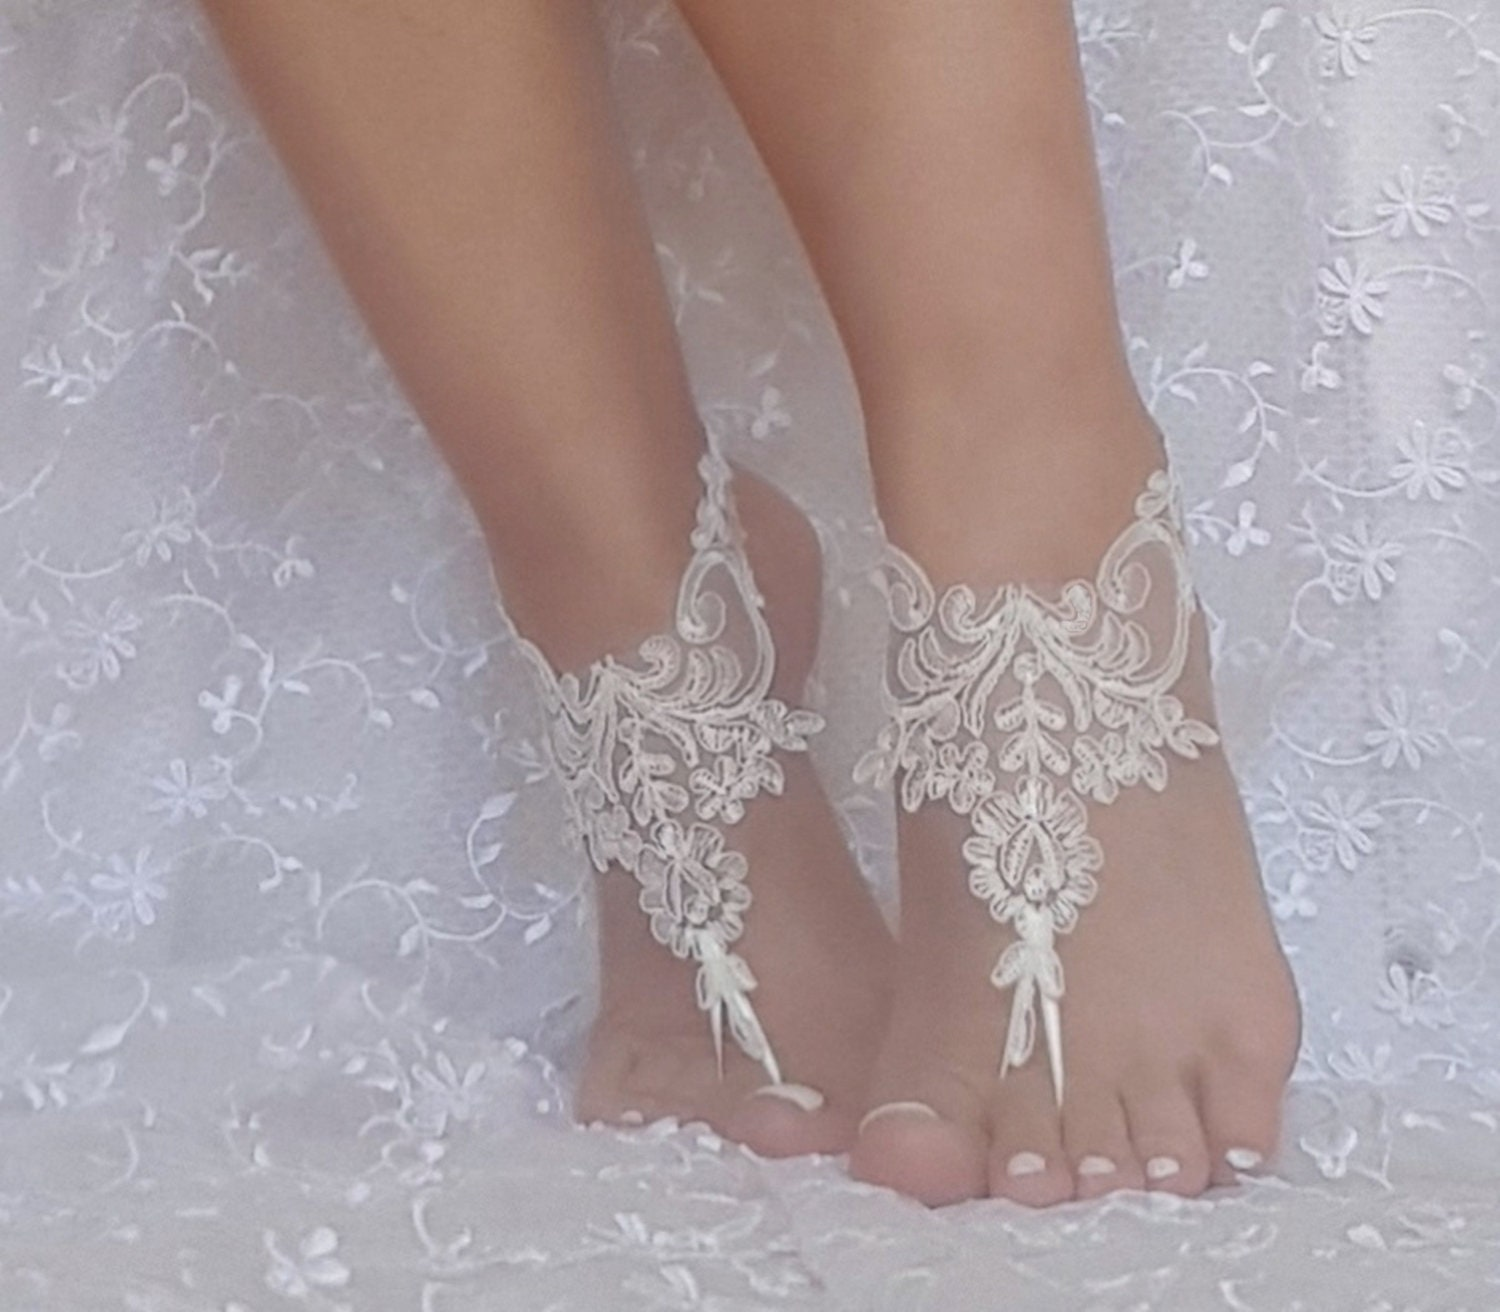 84a634fbcaaca 11 color lace barefoot sandals, bridal barefoot sandals, beach ...